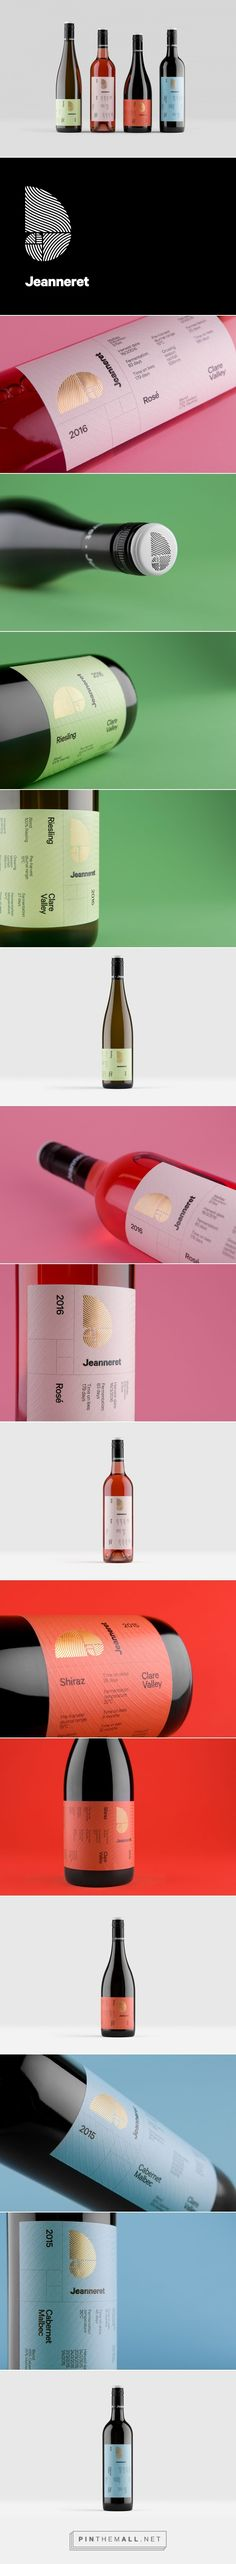 Jeanneret Wine Packaging by Chris Cooper | Fivestar Branding Agency – Design and Branding Agency & Curated Inspiration Gallery